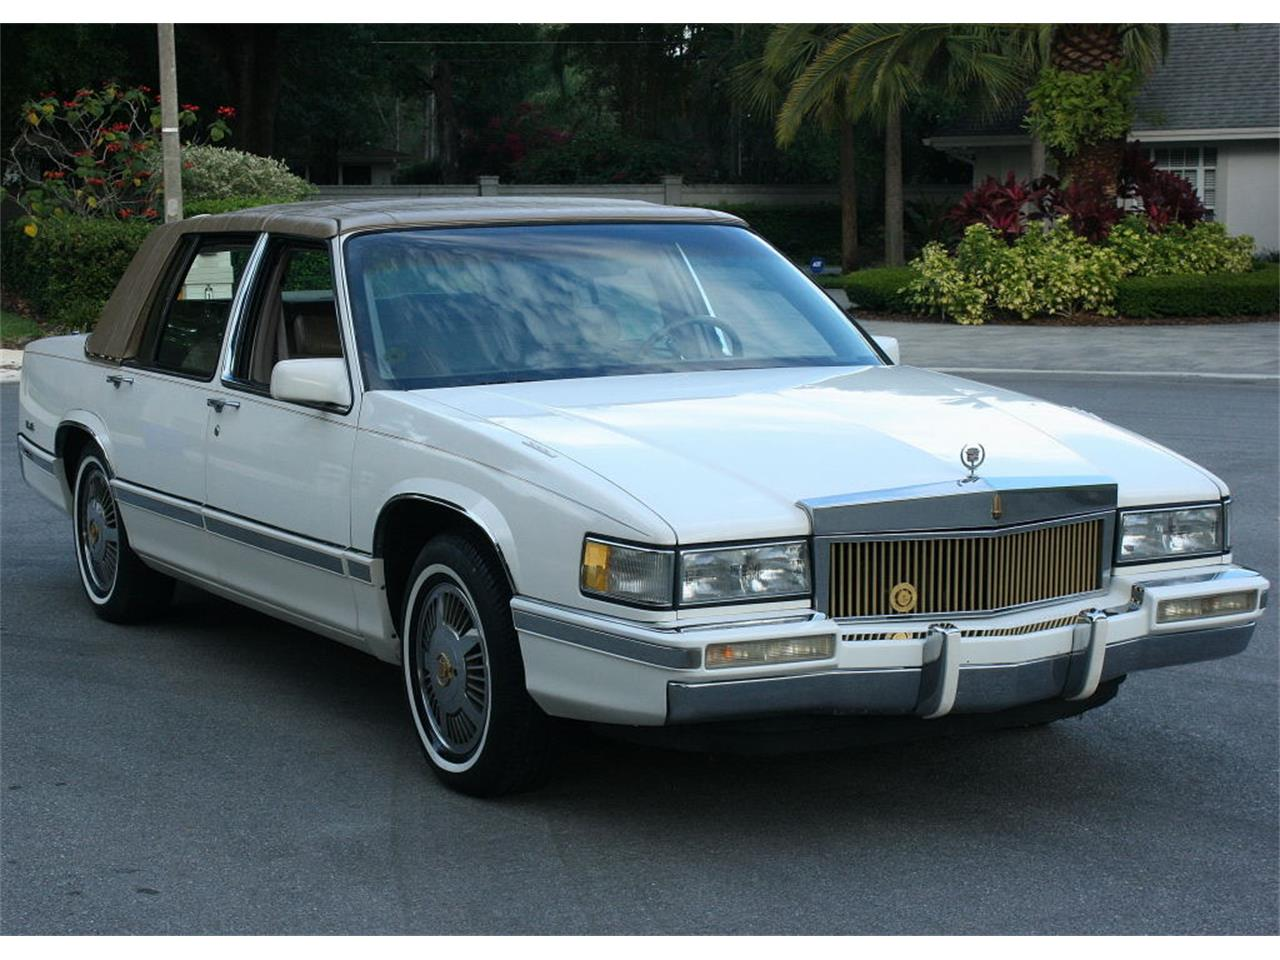 Large Picture of '91 Sedan located in Florida - $9,500.00 Offered by MJC Classic Cars - L5XM